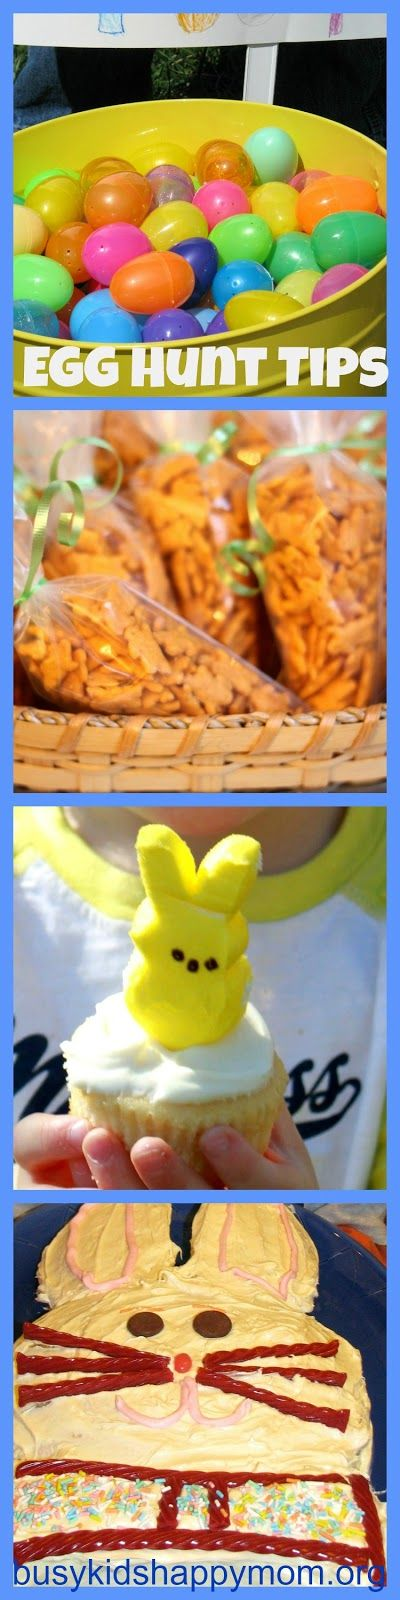 Tips for Planning a Neighborhood Easter Egg Hunt   Busy Kids Happy Mom